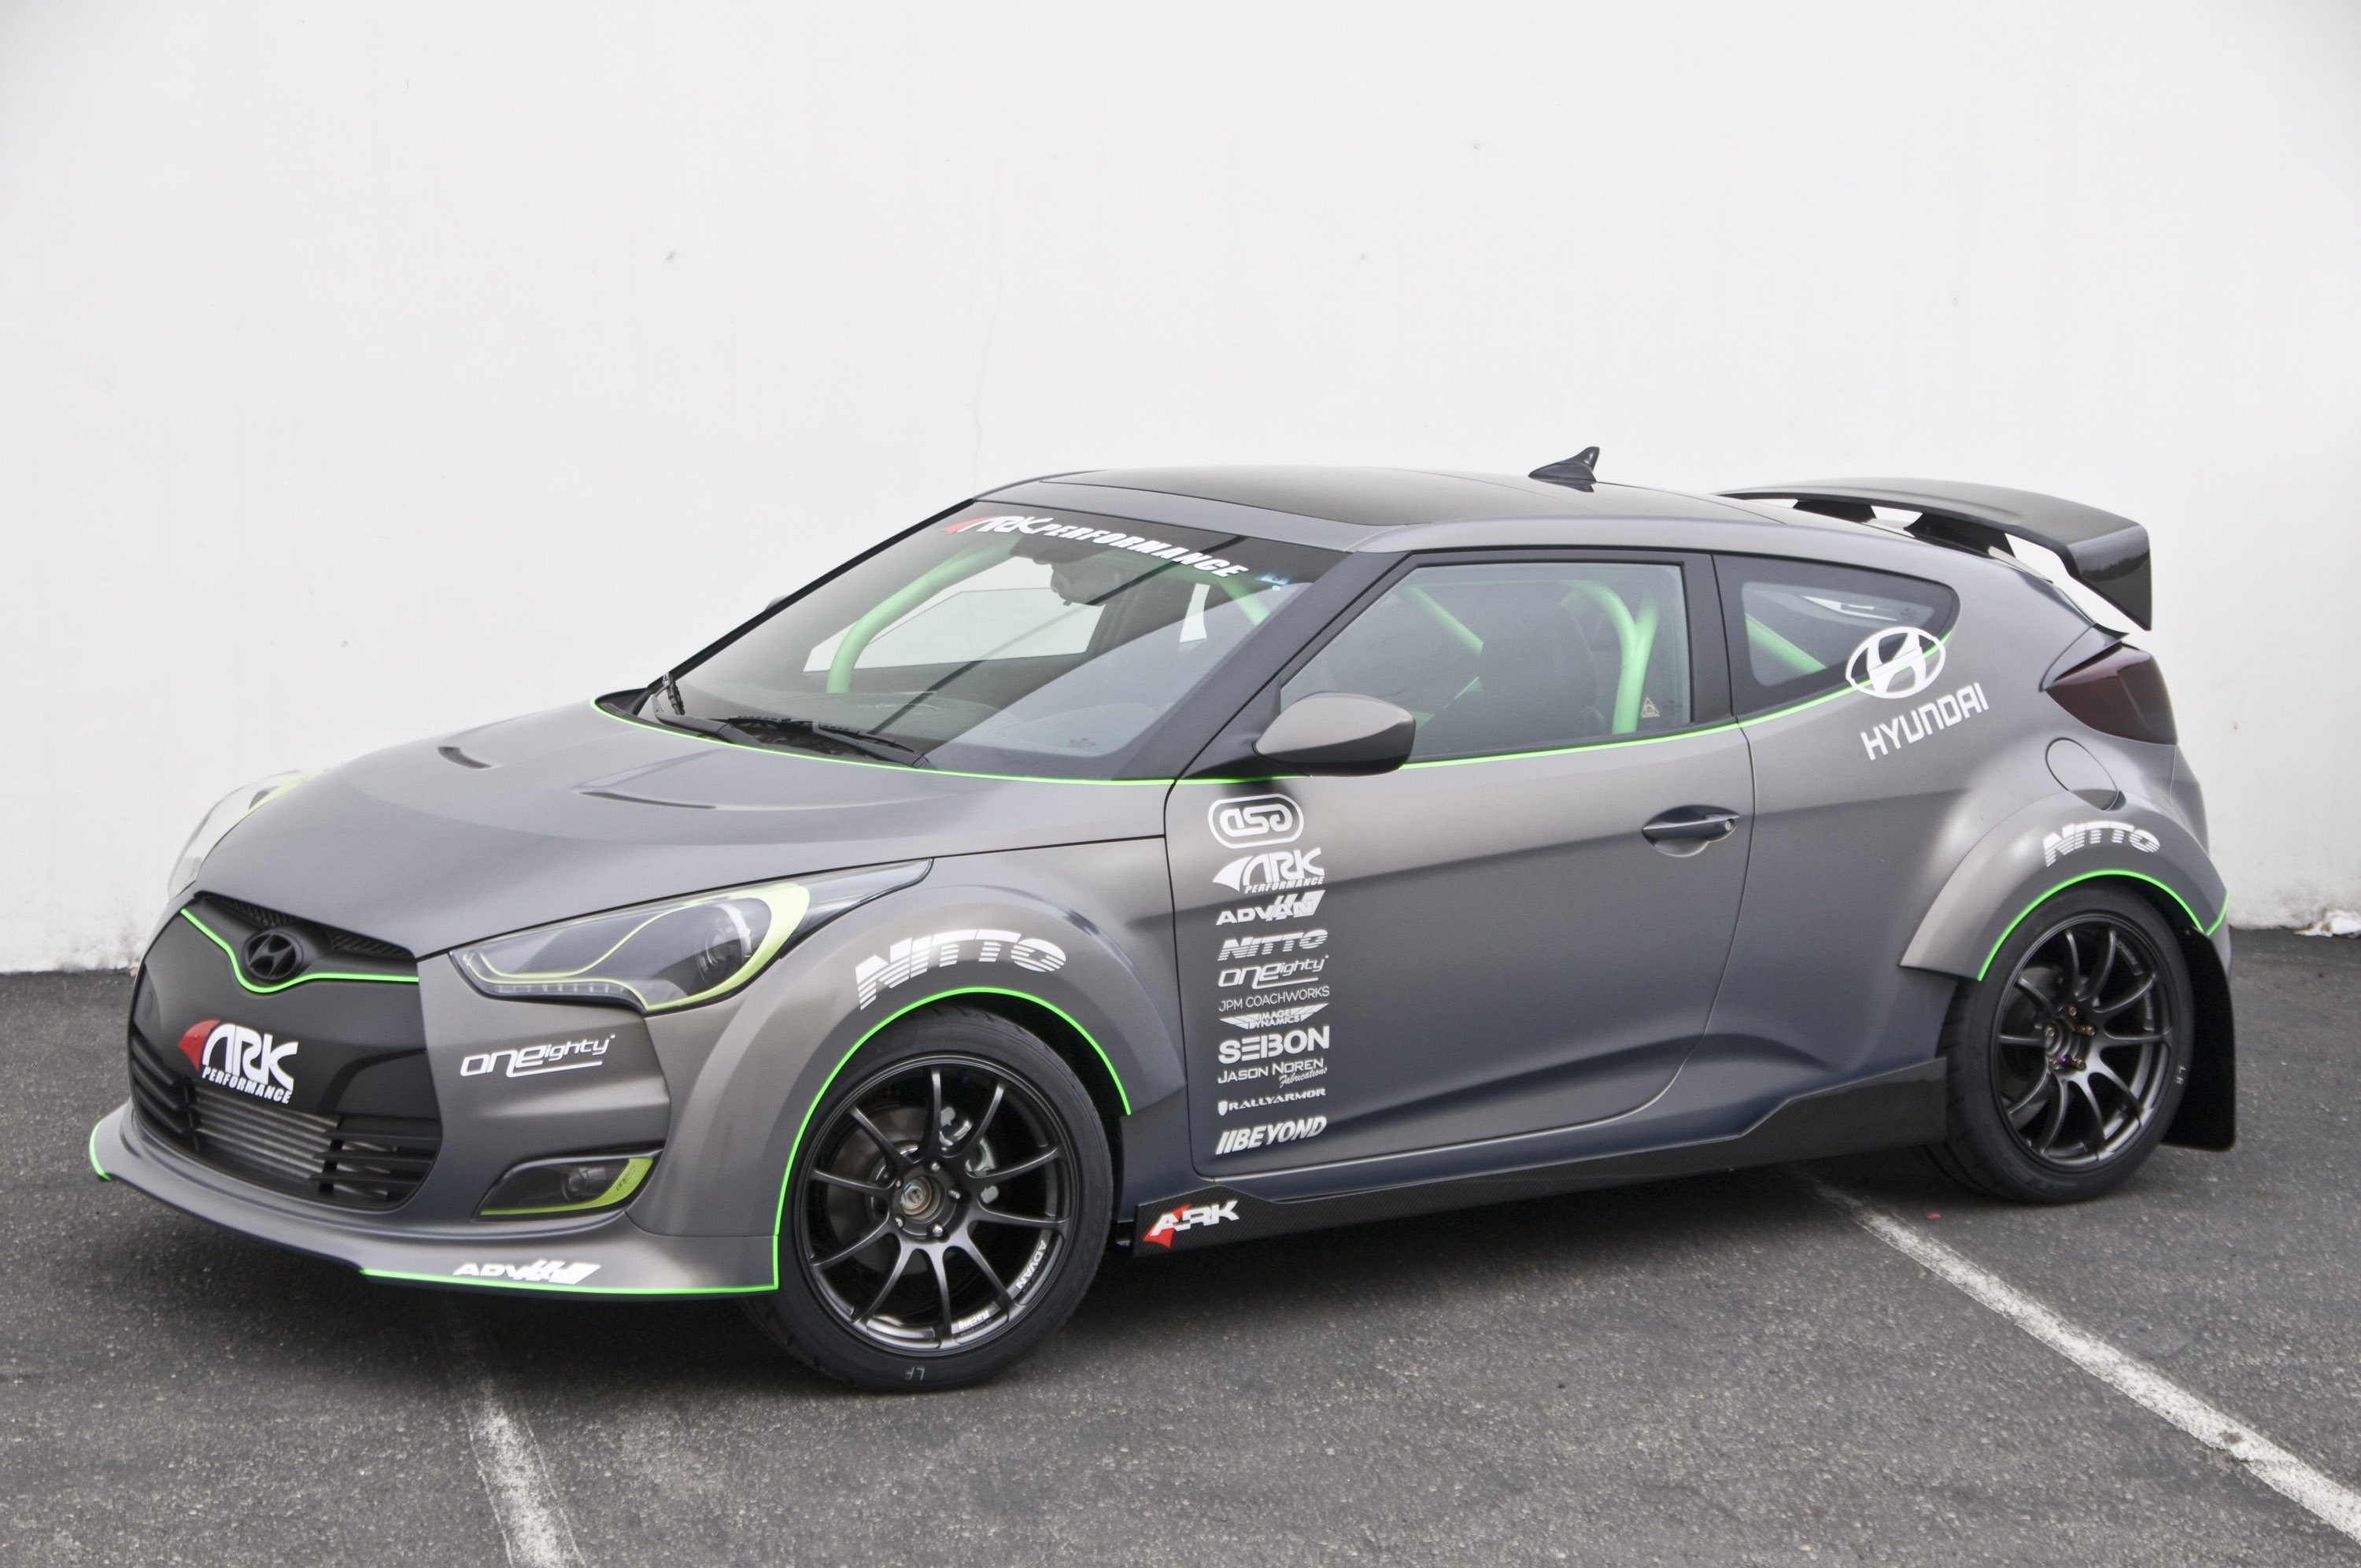 Hyundai veloster supercharger kit